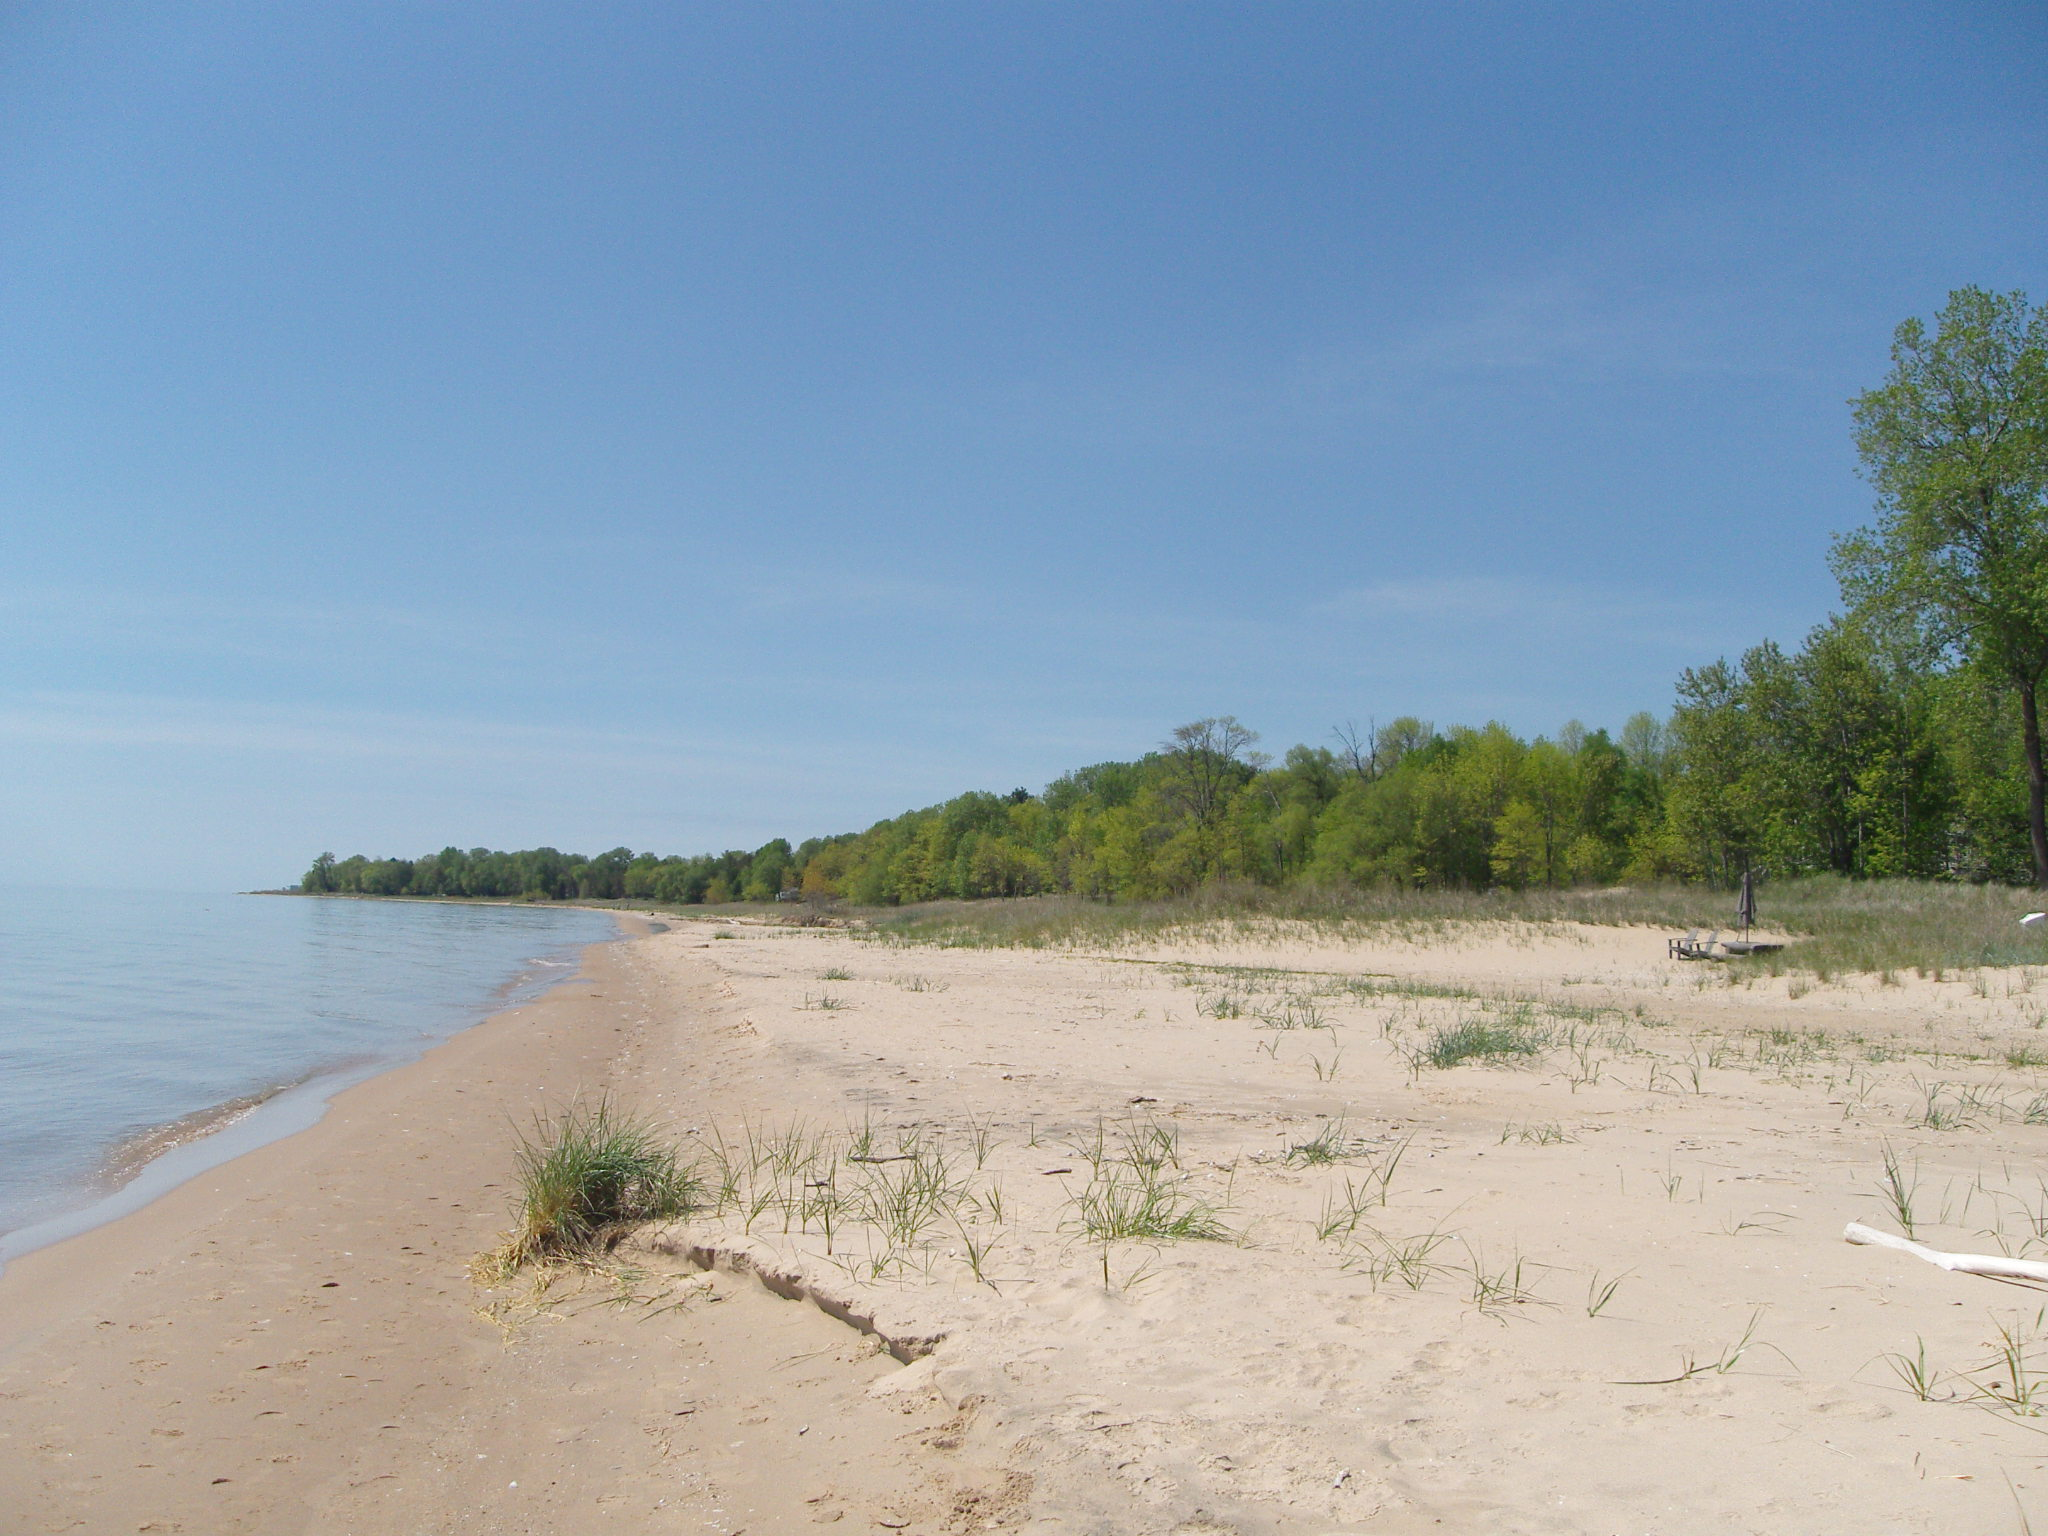 A beach with a treeline in the background.